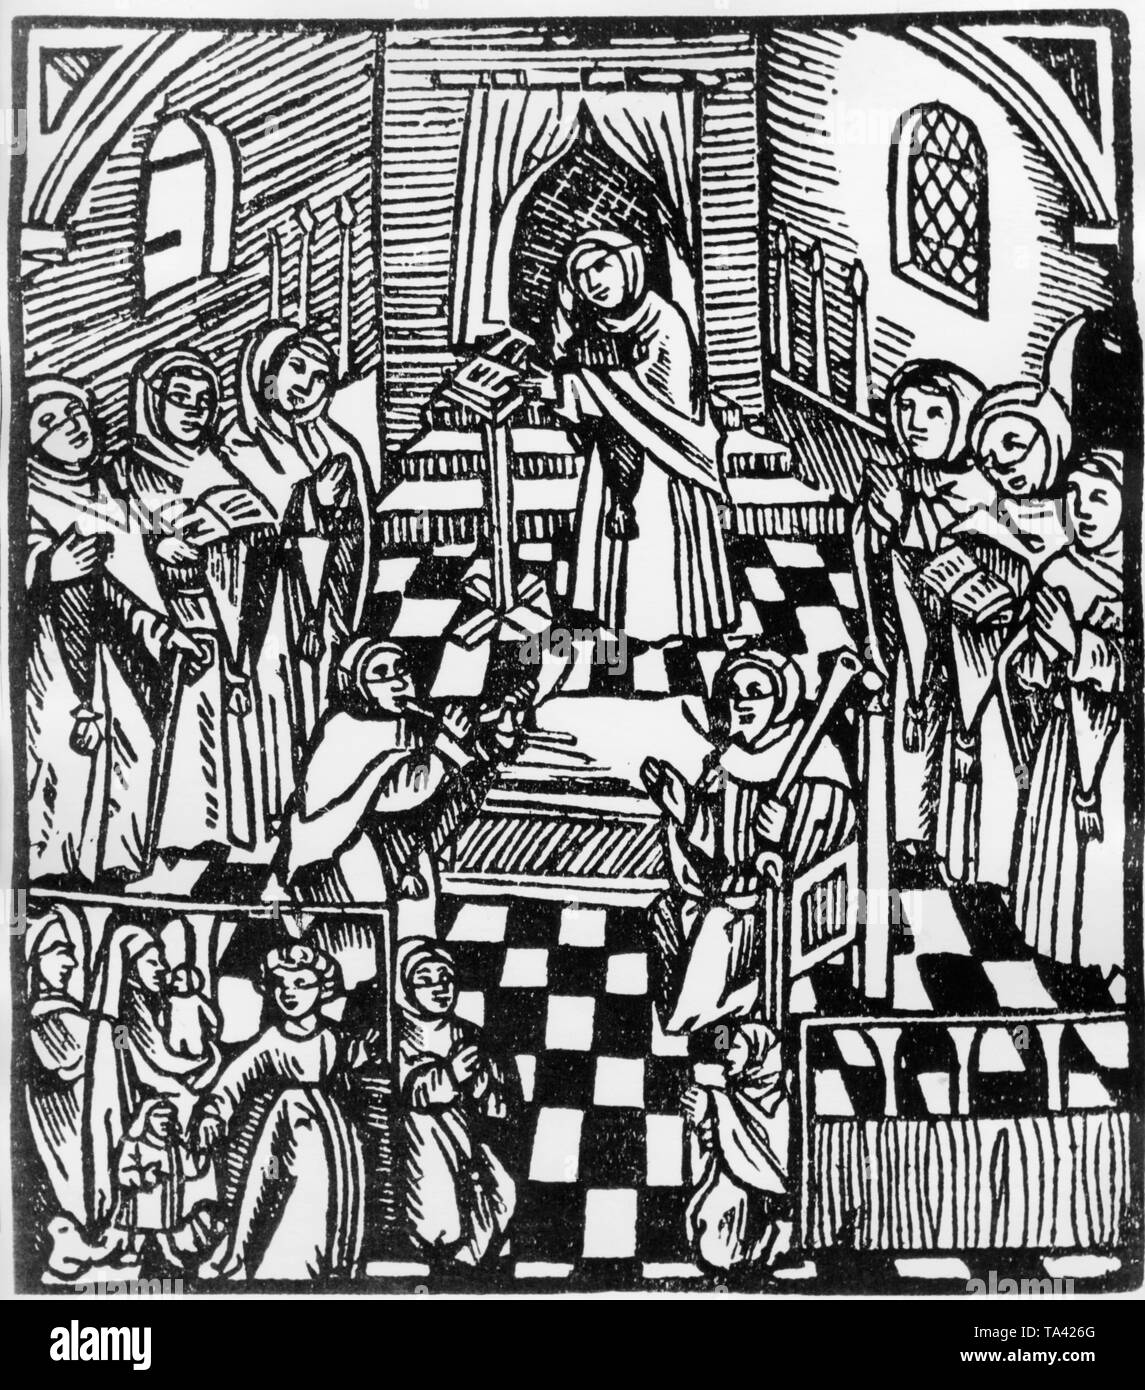 Woodcut from Antonius Margeritha's 'Der gantze Juedisch Glaub' (The Whole Jewish Belief). Antonius Margeritha was the son of a rabbi and converted to Christianity. His work is regarded as a source of early-modern anti-Jewish writings. - Stock Image